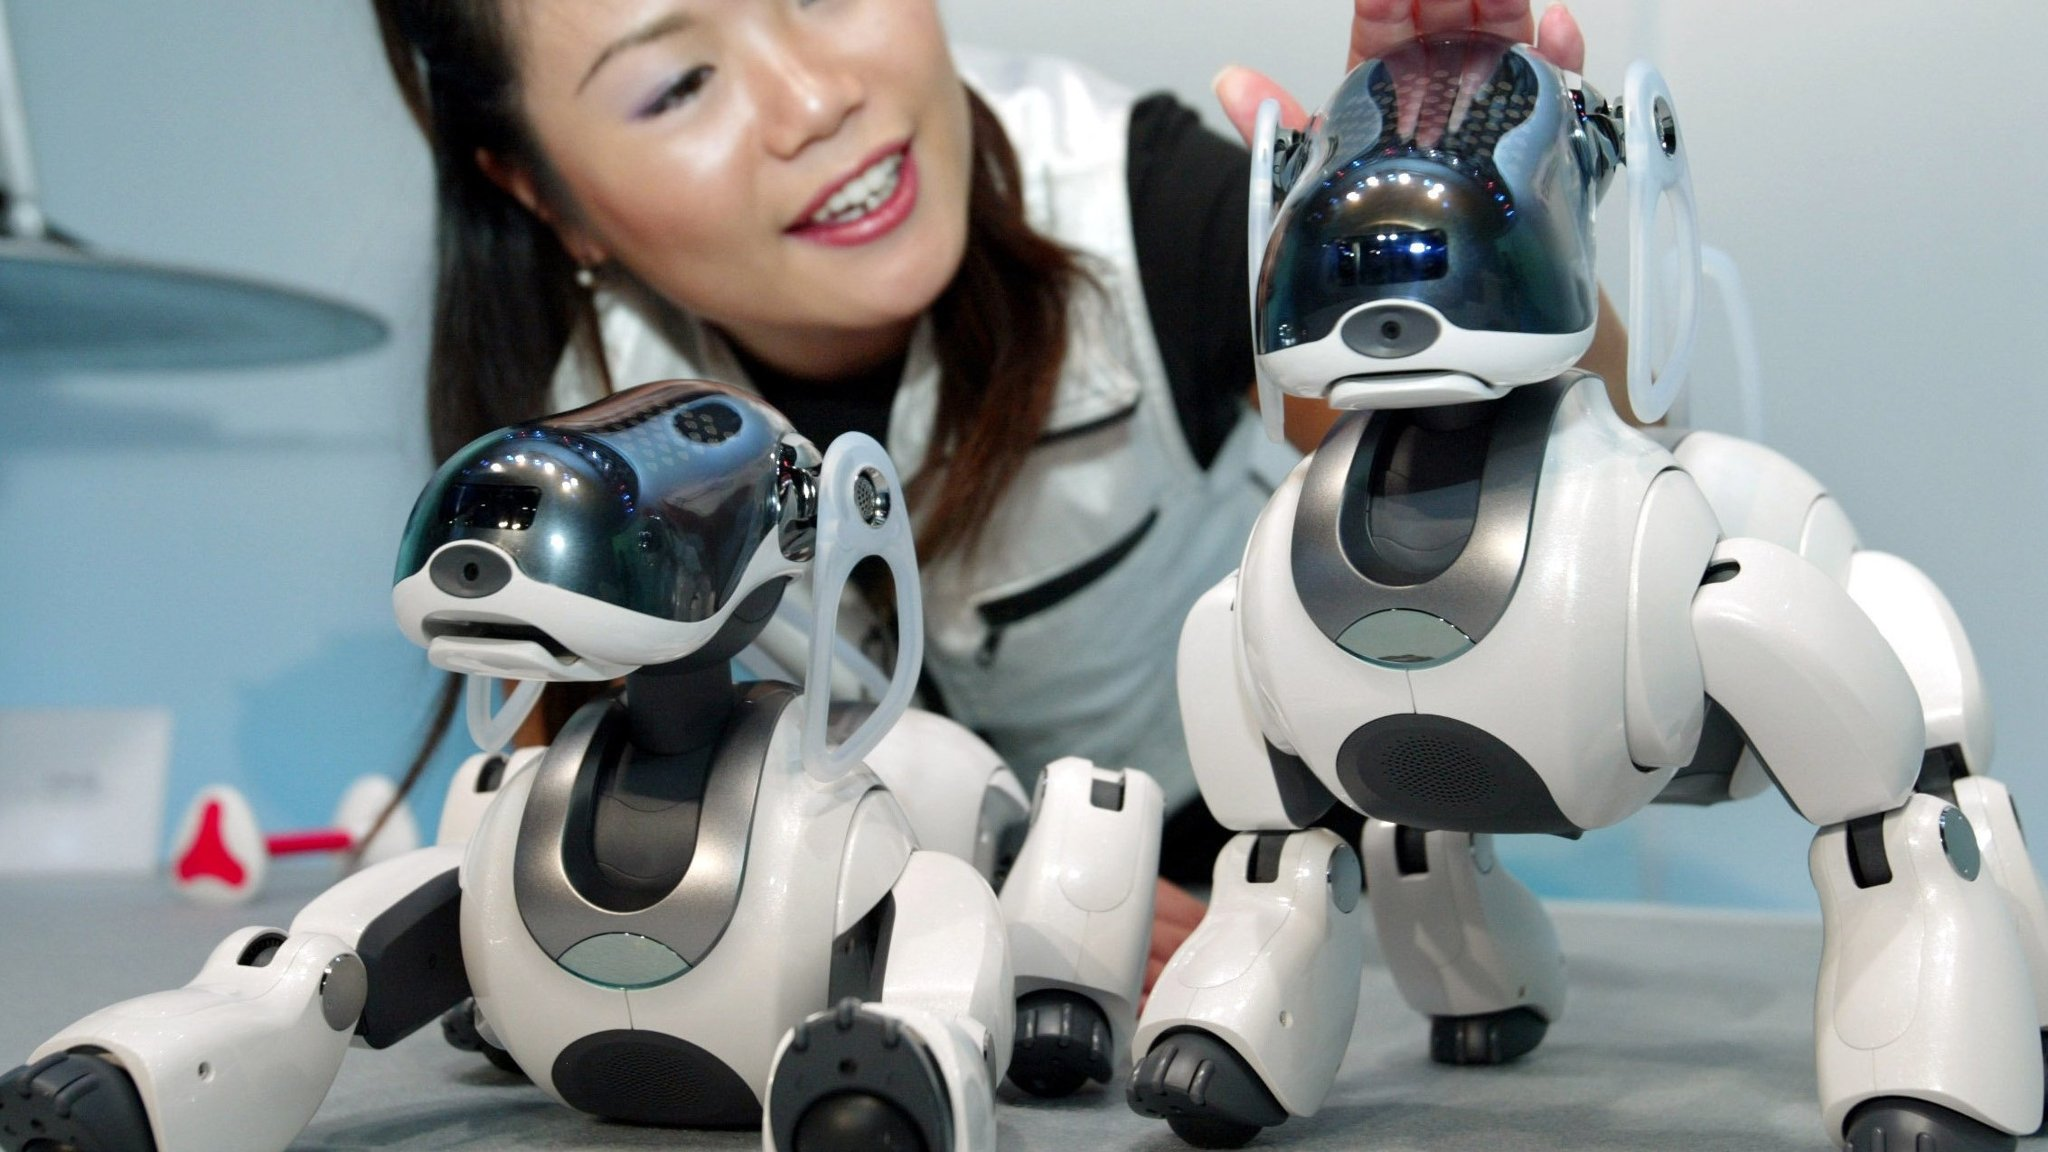 Japanese markets primed to run after the robot dog